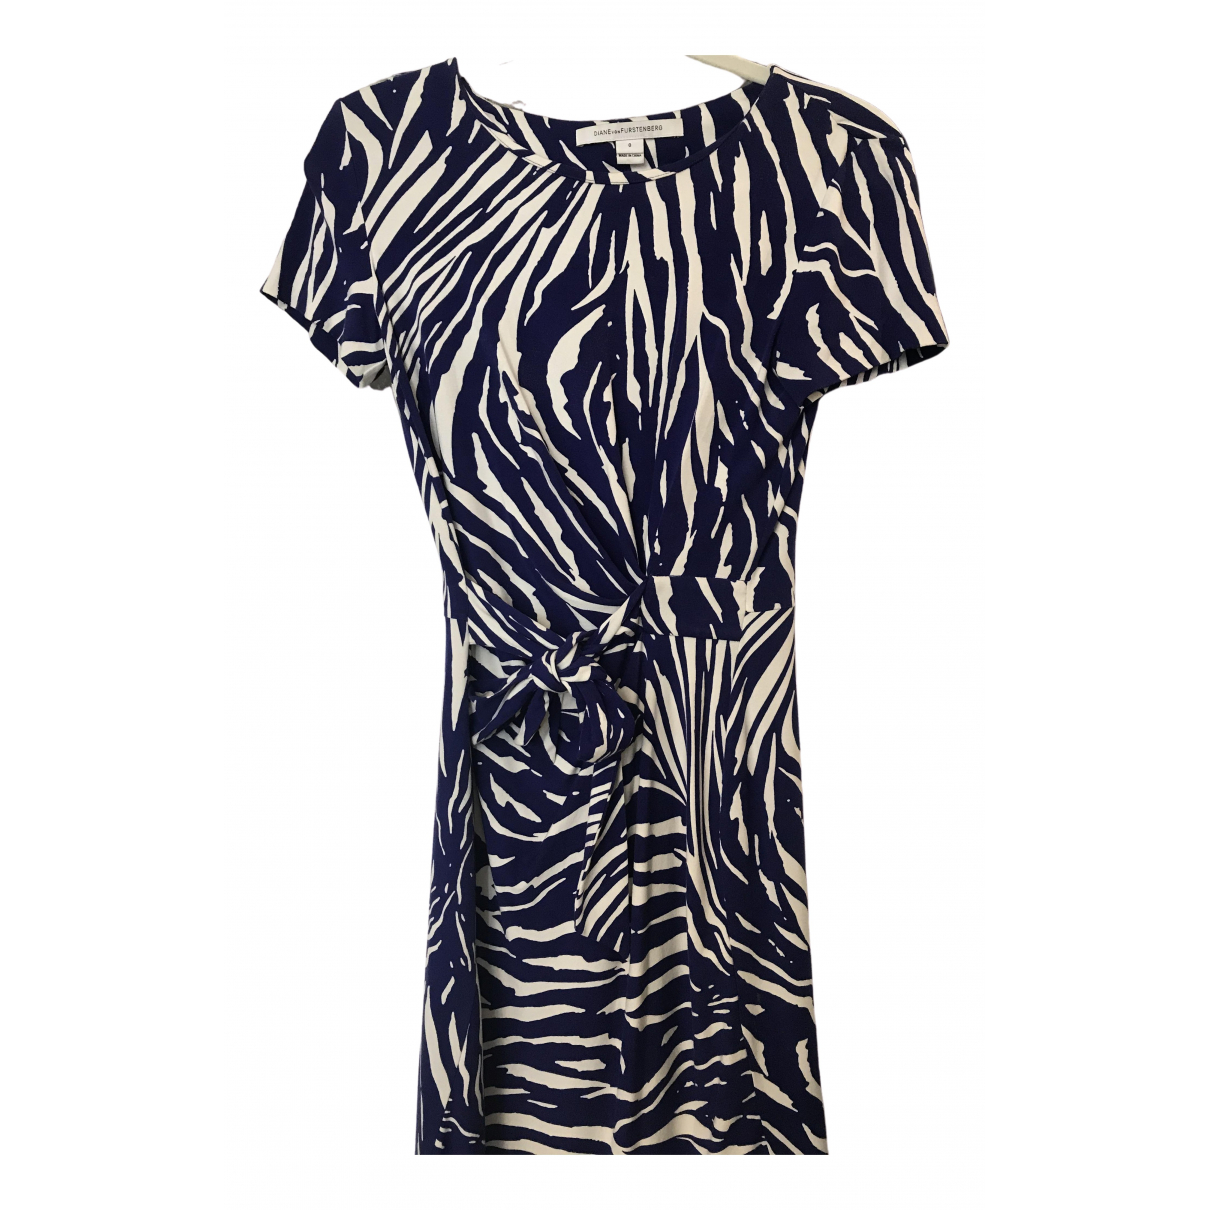 Diane Von Furstenberg \N Blue dress for Women XS International